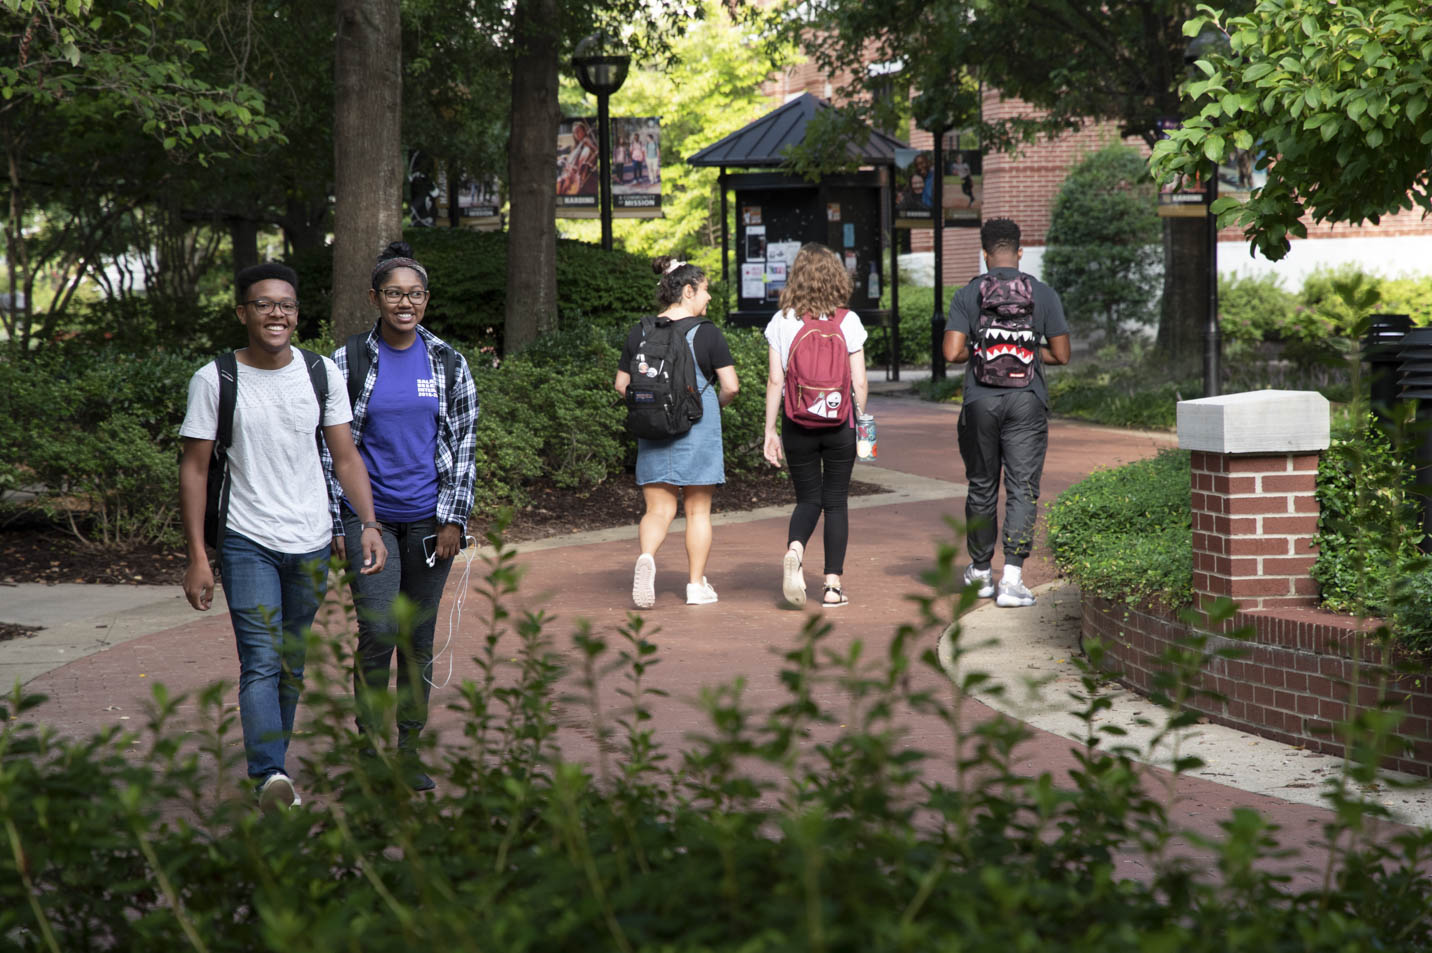 This is a photo of students walking on campus at Harding University.